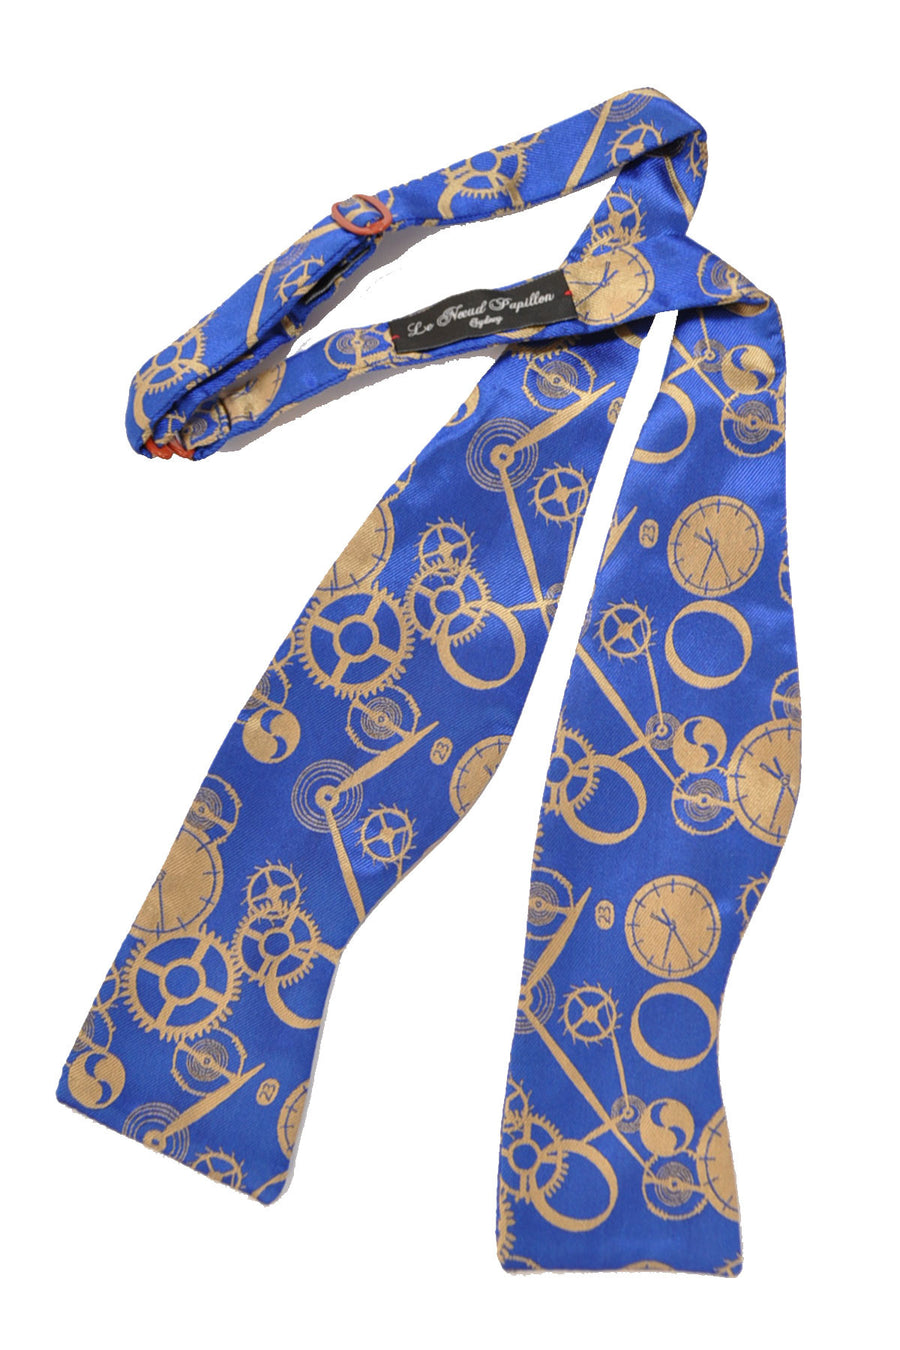 Le Noeud Papillon Bow Tie Royal Blue Clocks SALE